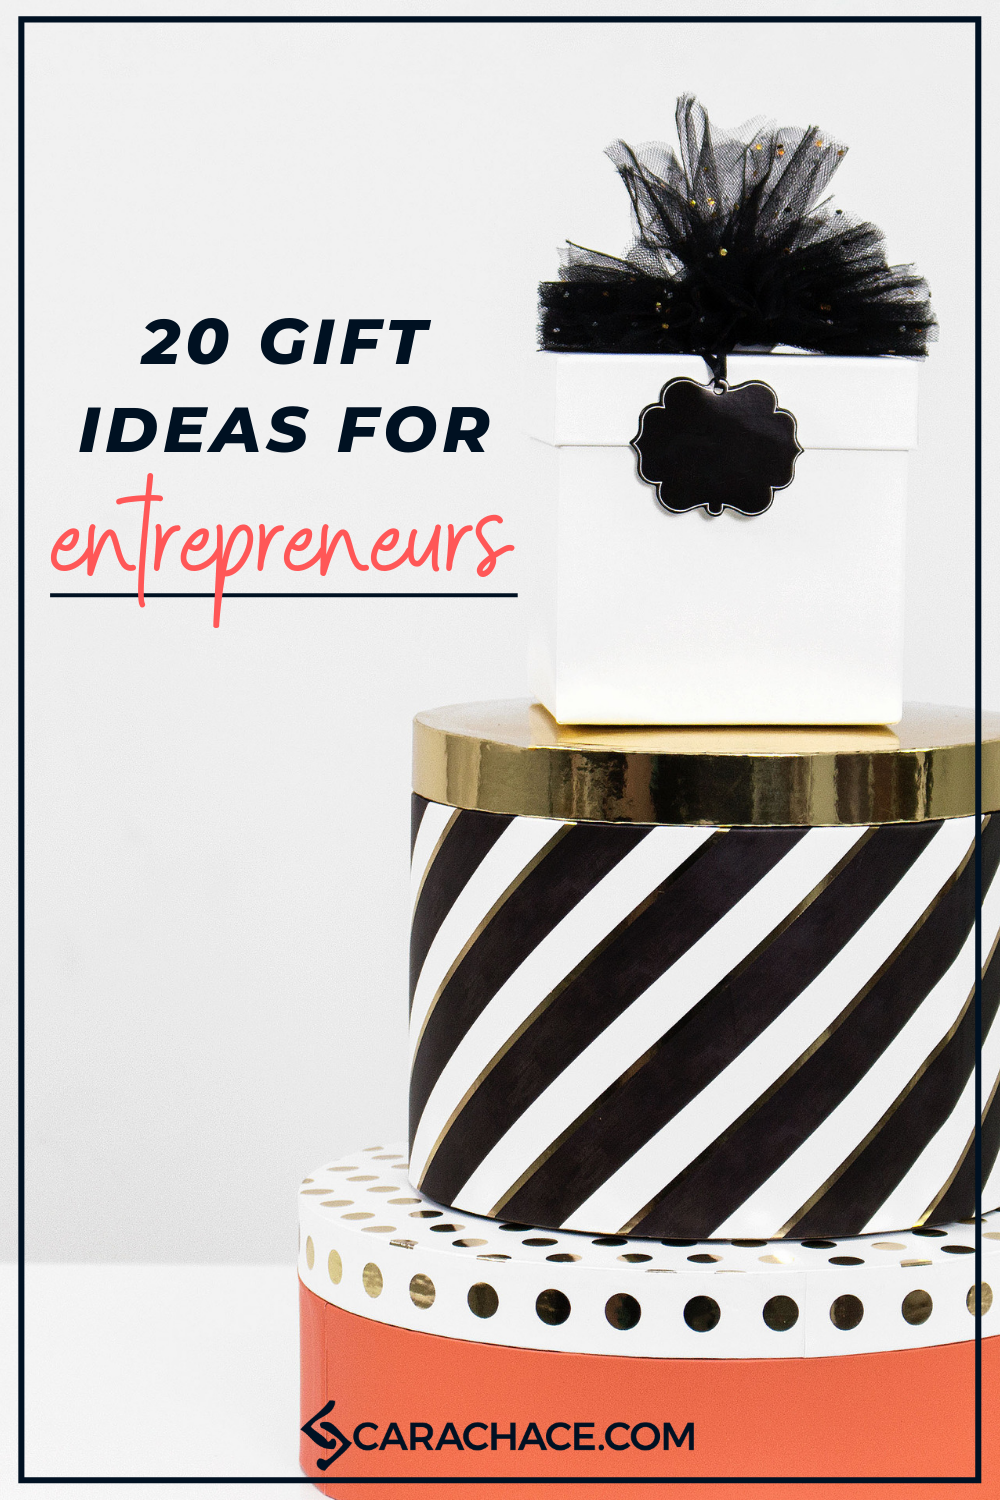 10 Gift Ideas For Entrepreneurs | Entrepreneur gifts, Office ...